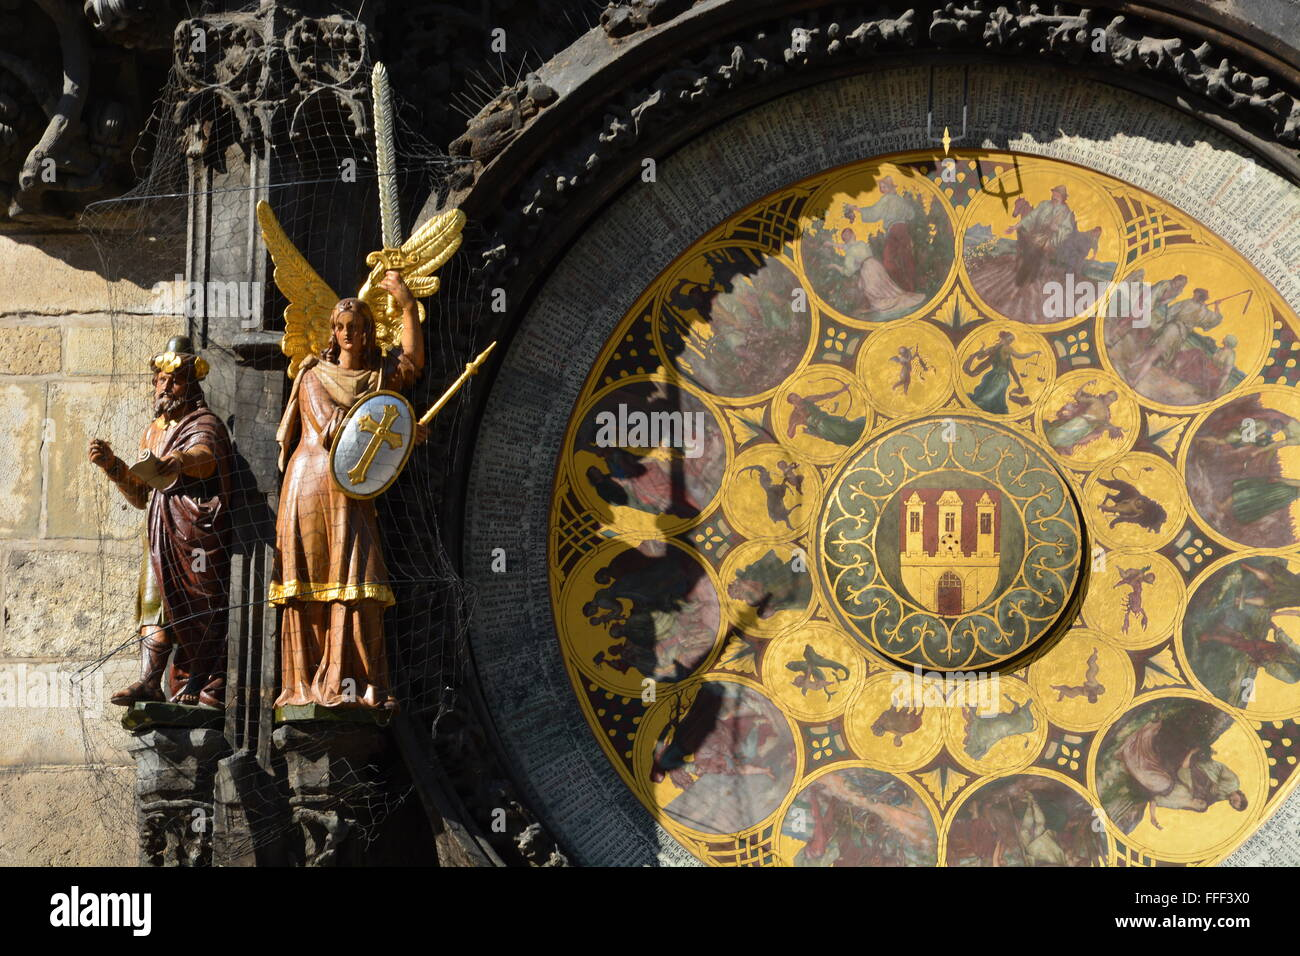 Close up of the Astrological Clock on the Old Town Hall in Prague's Old Town Square, Czech Republic. - Stock Image